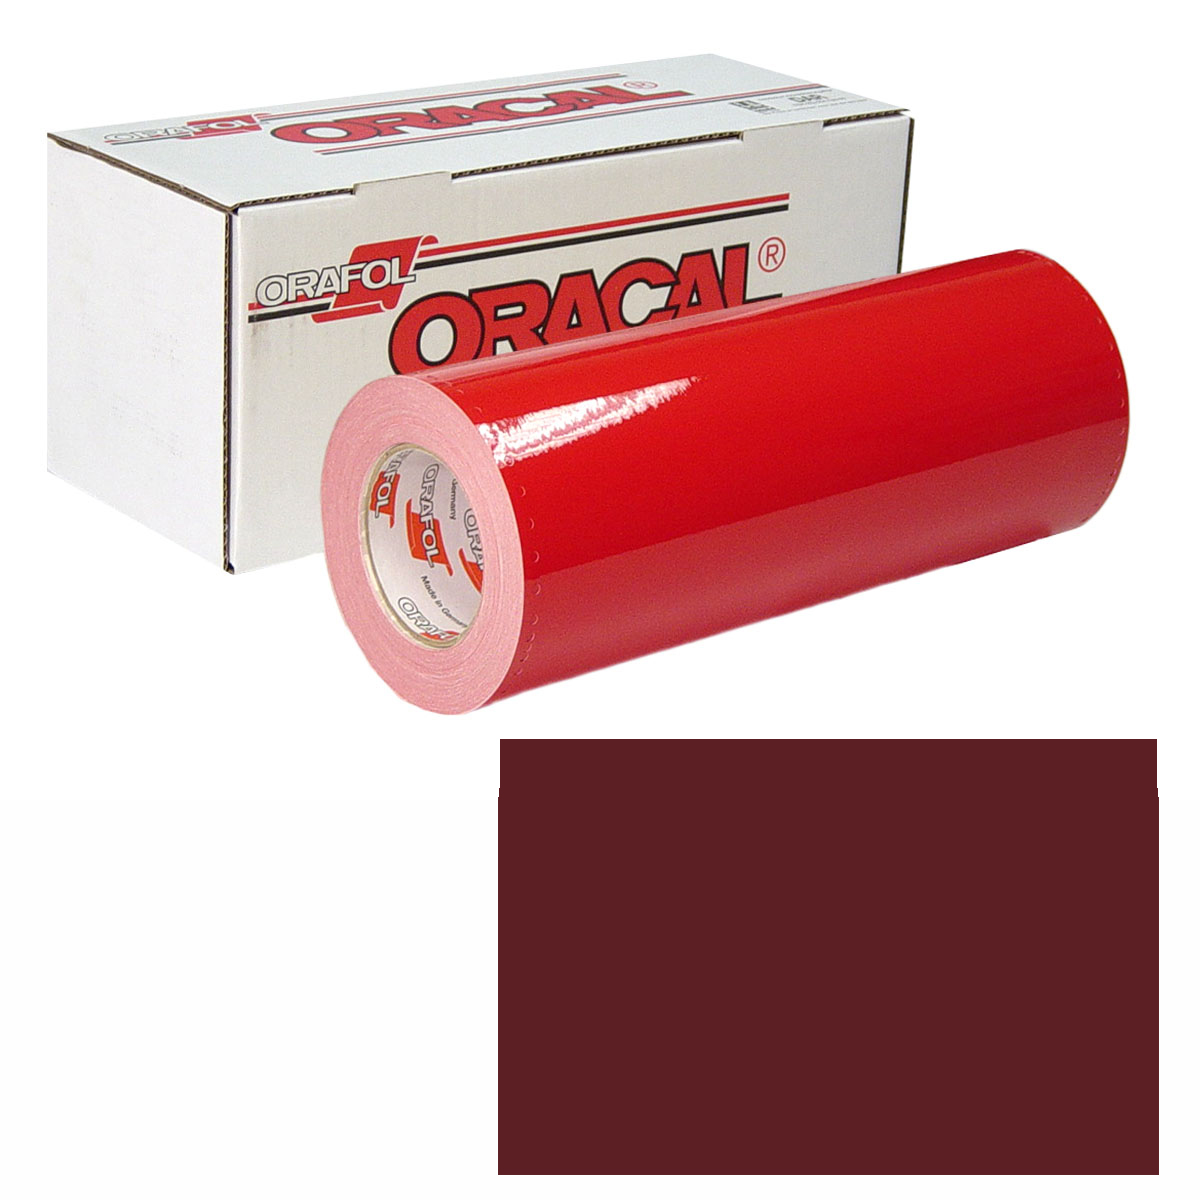 ORACAL 951M 30in X 10yd 369 Red Brown